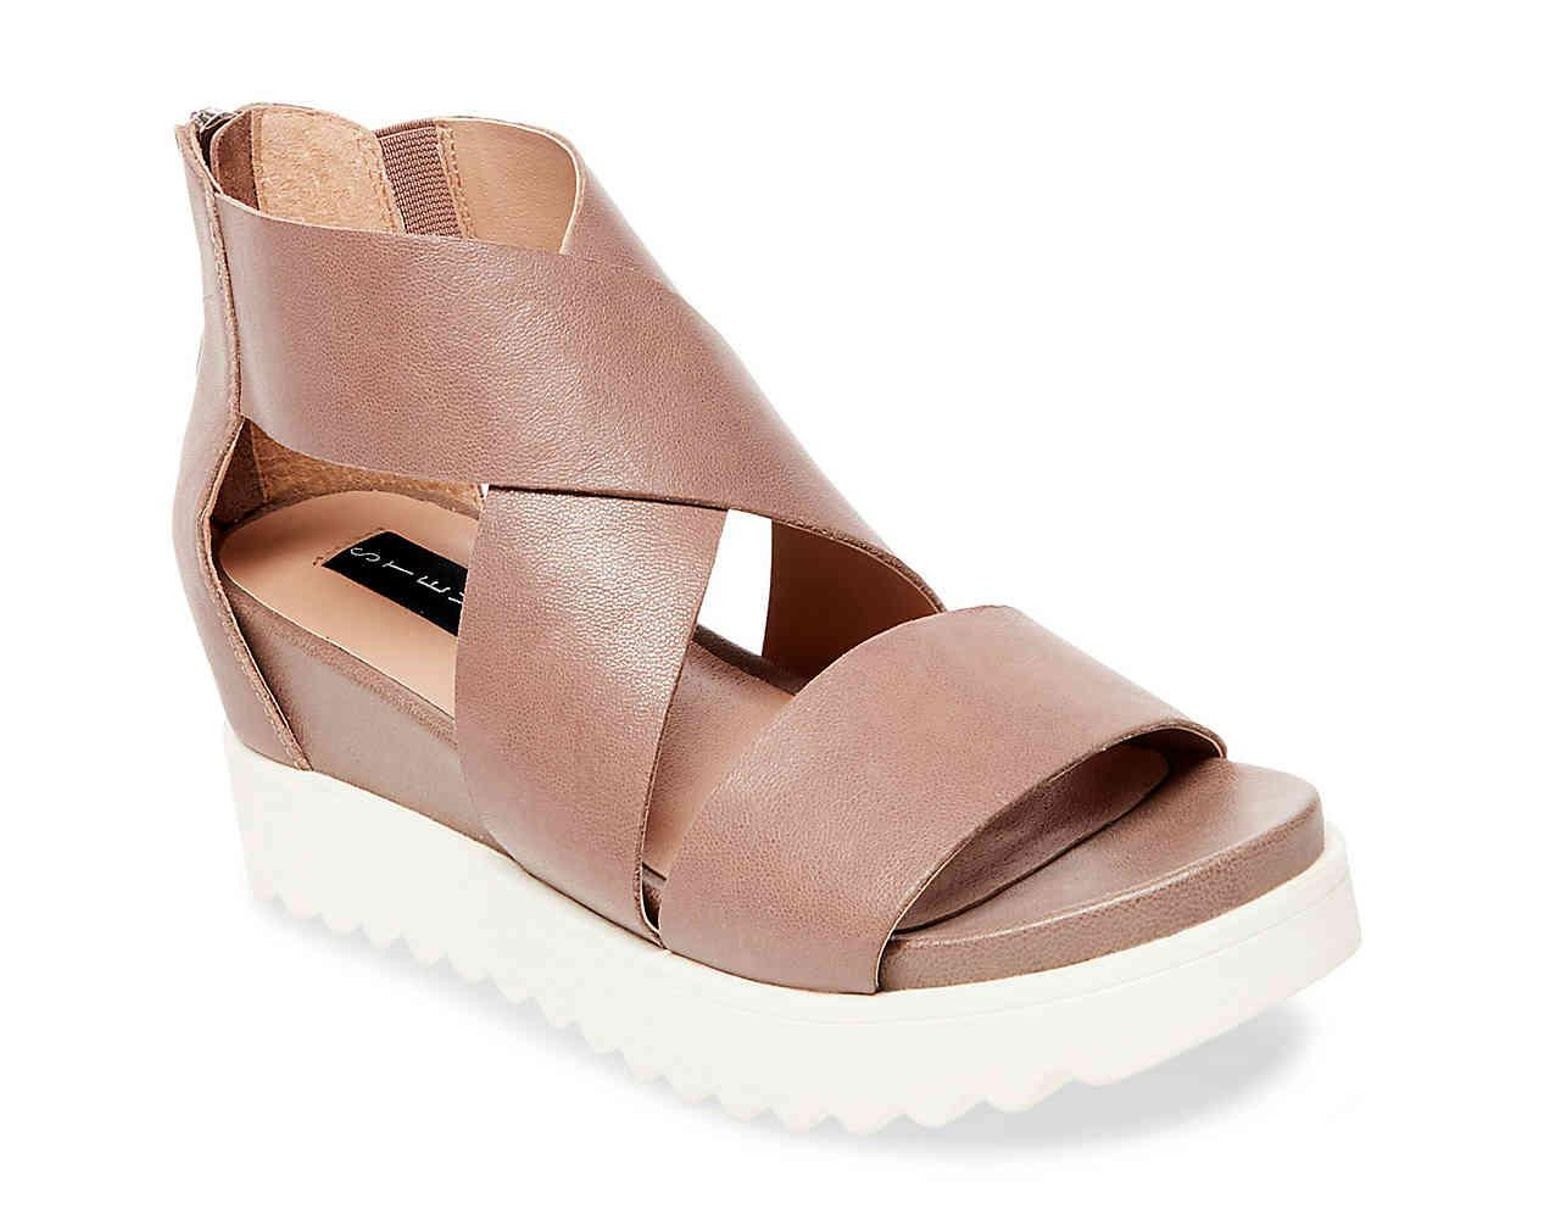 7707a62be31 Women's Keanna Wedge Sandal